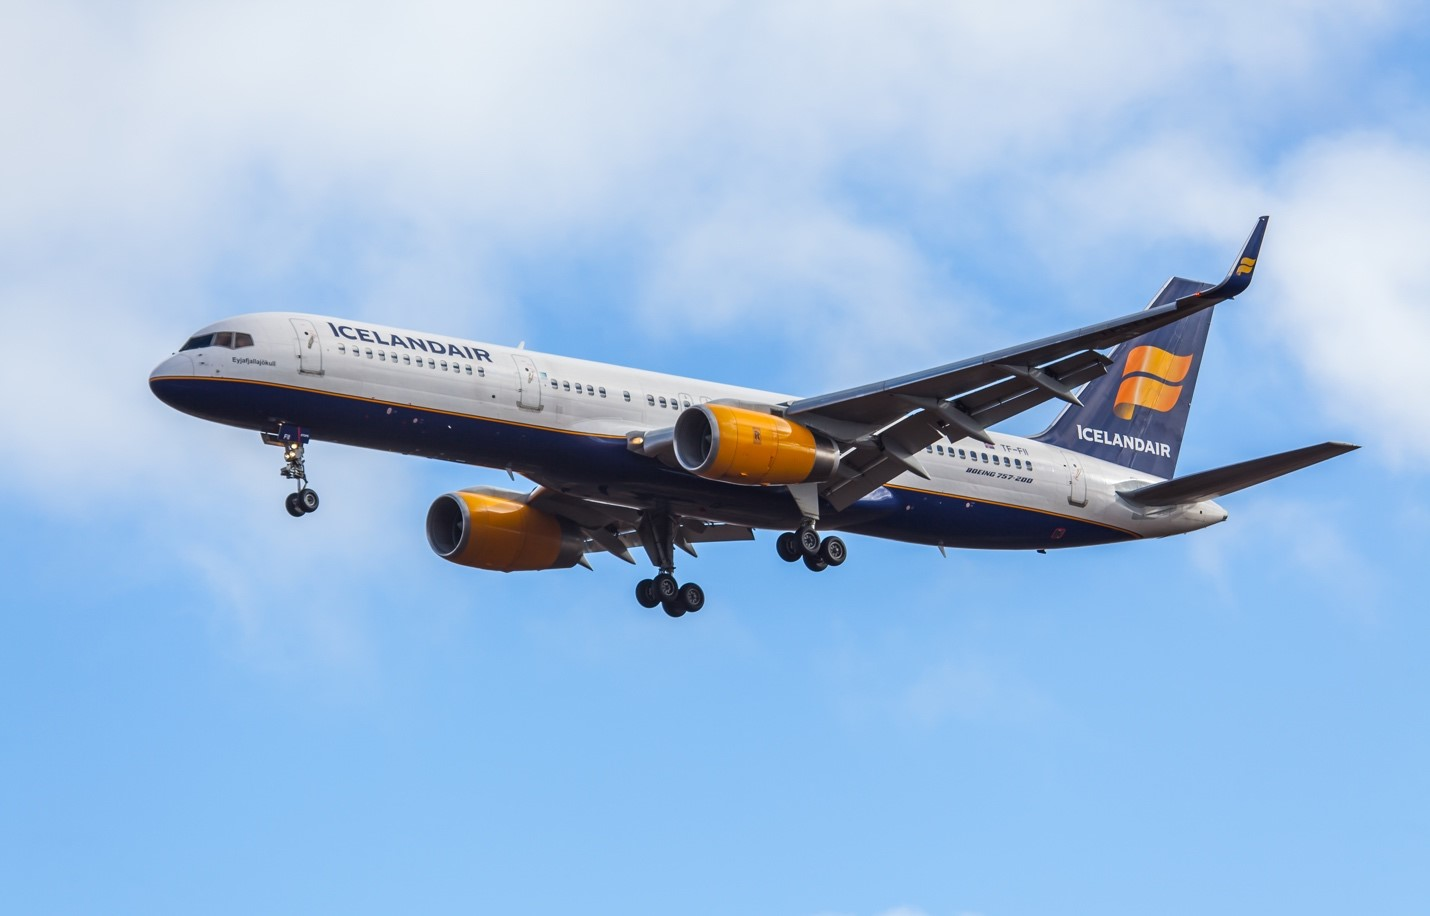 Icelandair Layouver / Stopver in Iceland